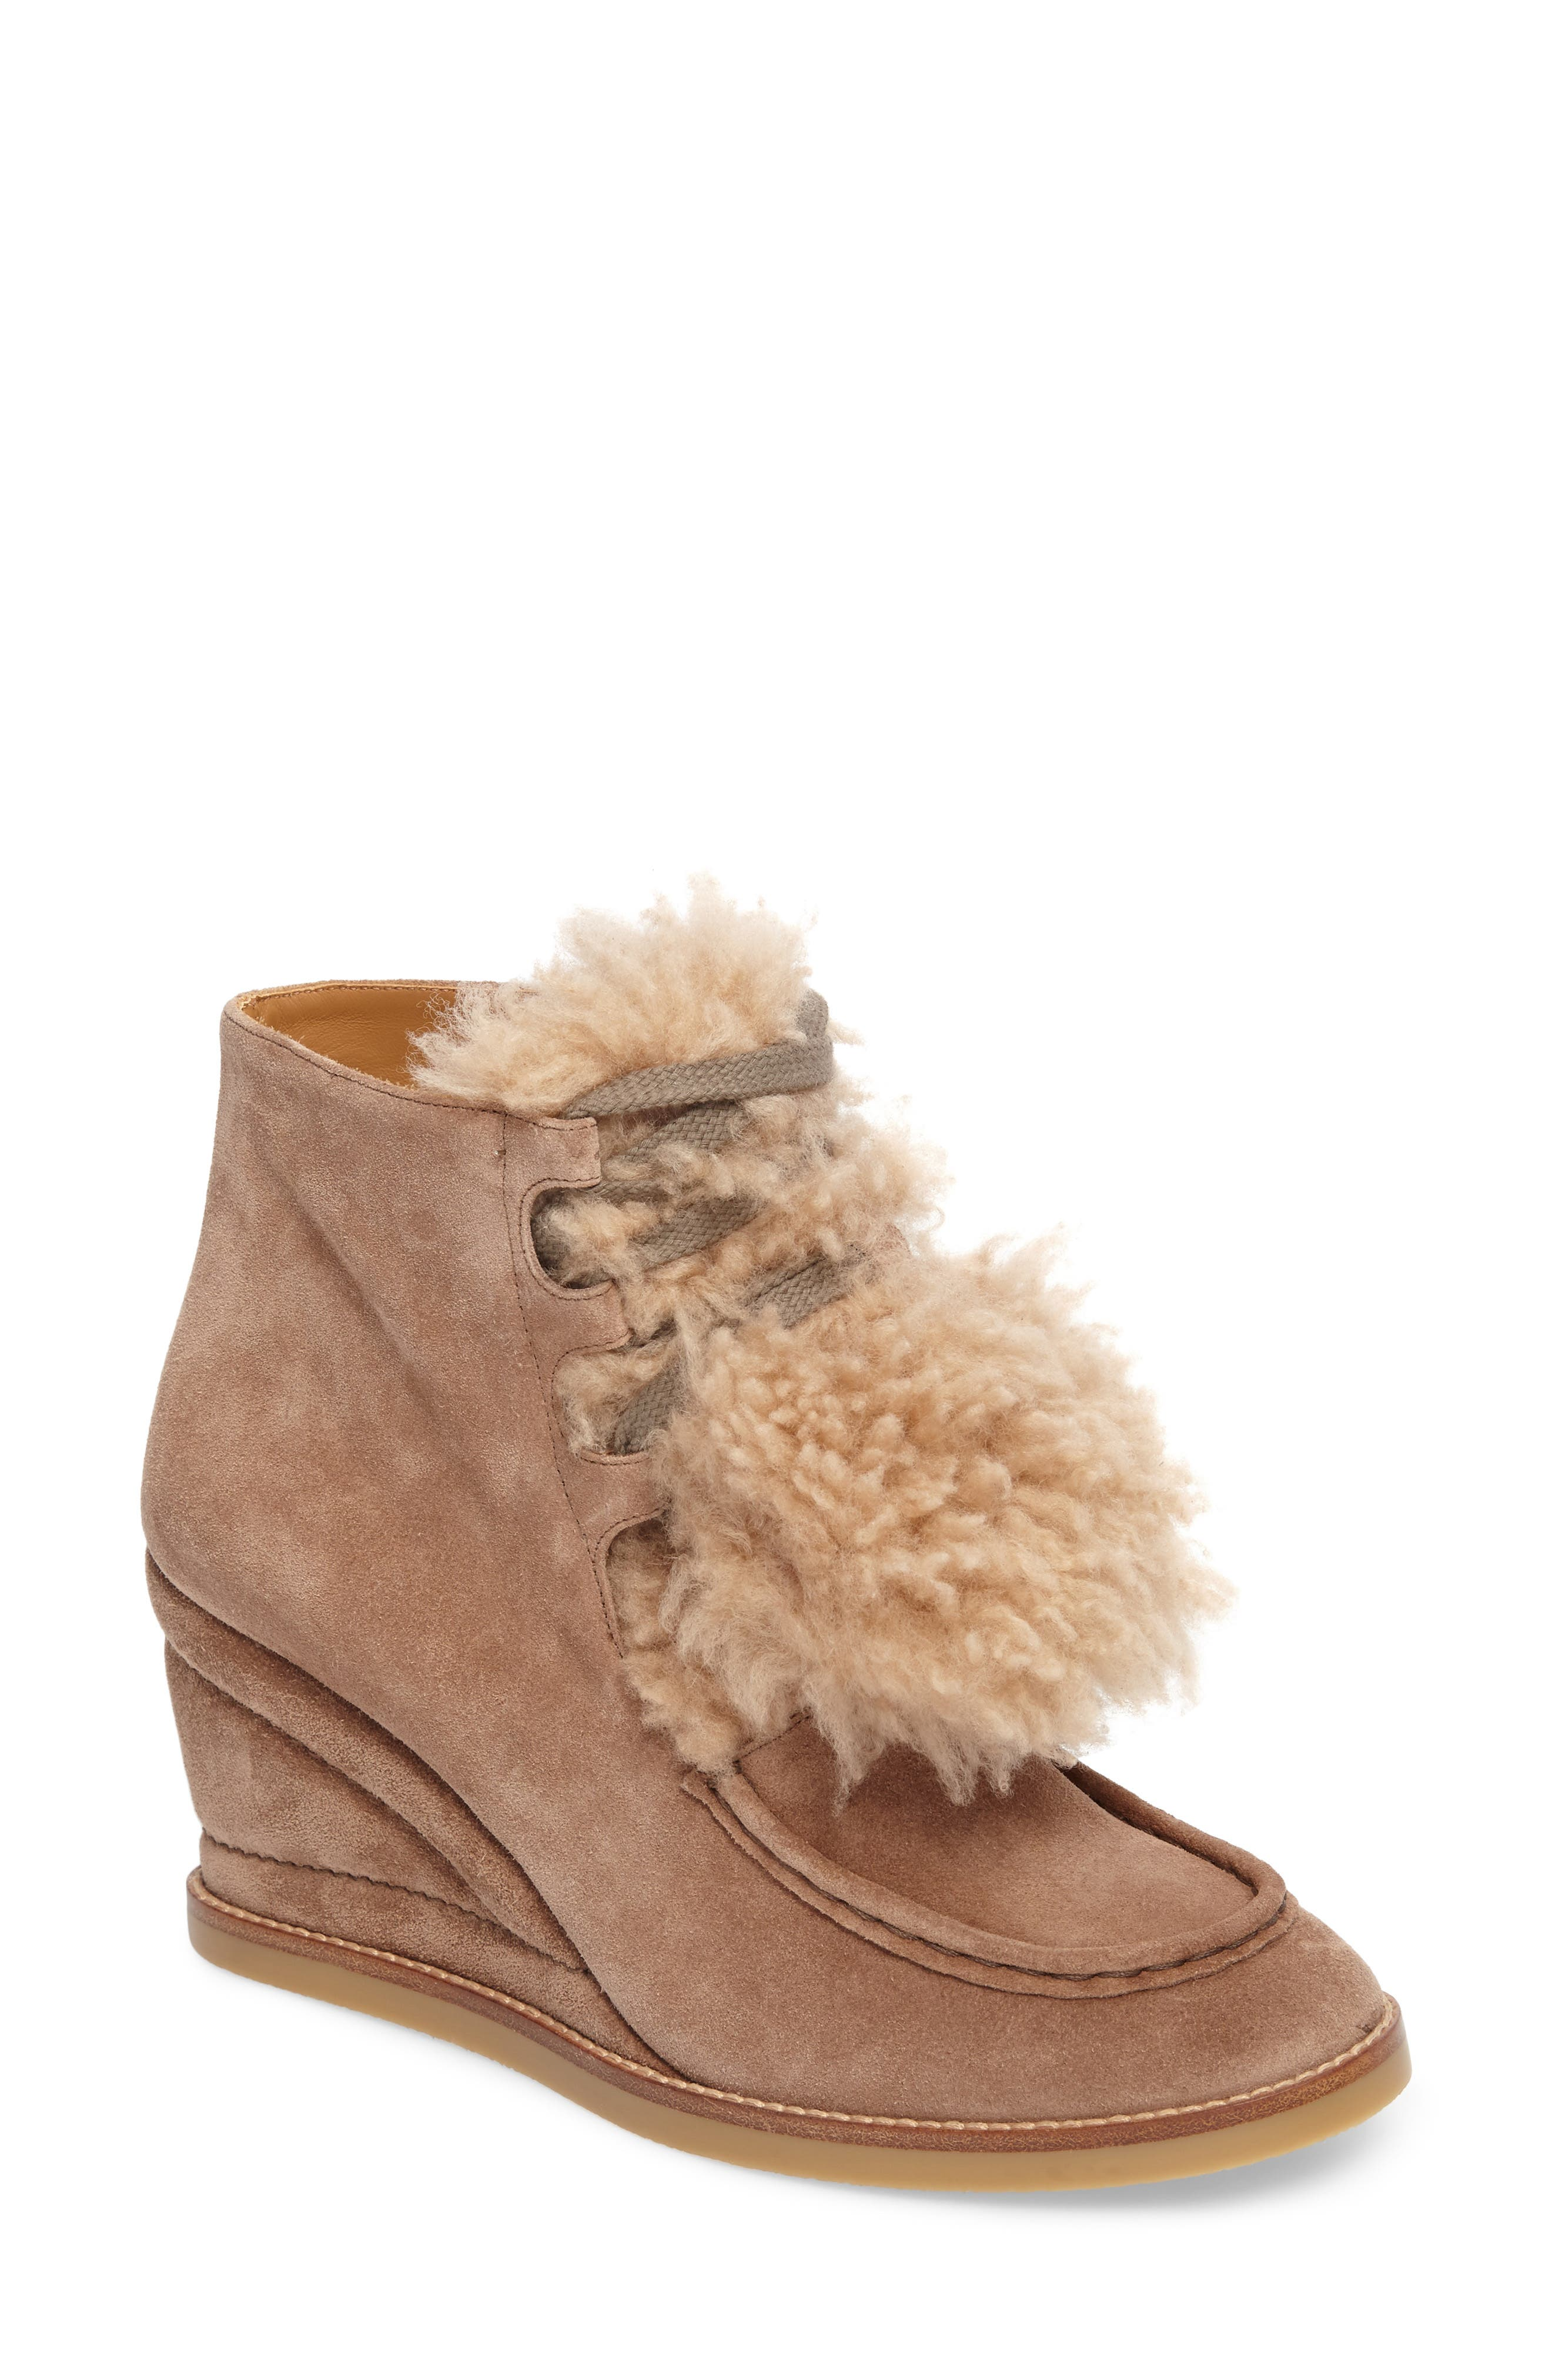 Peggy Genuine Shearling Wedge Bootie,                         Main,                         color, 250